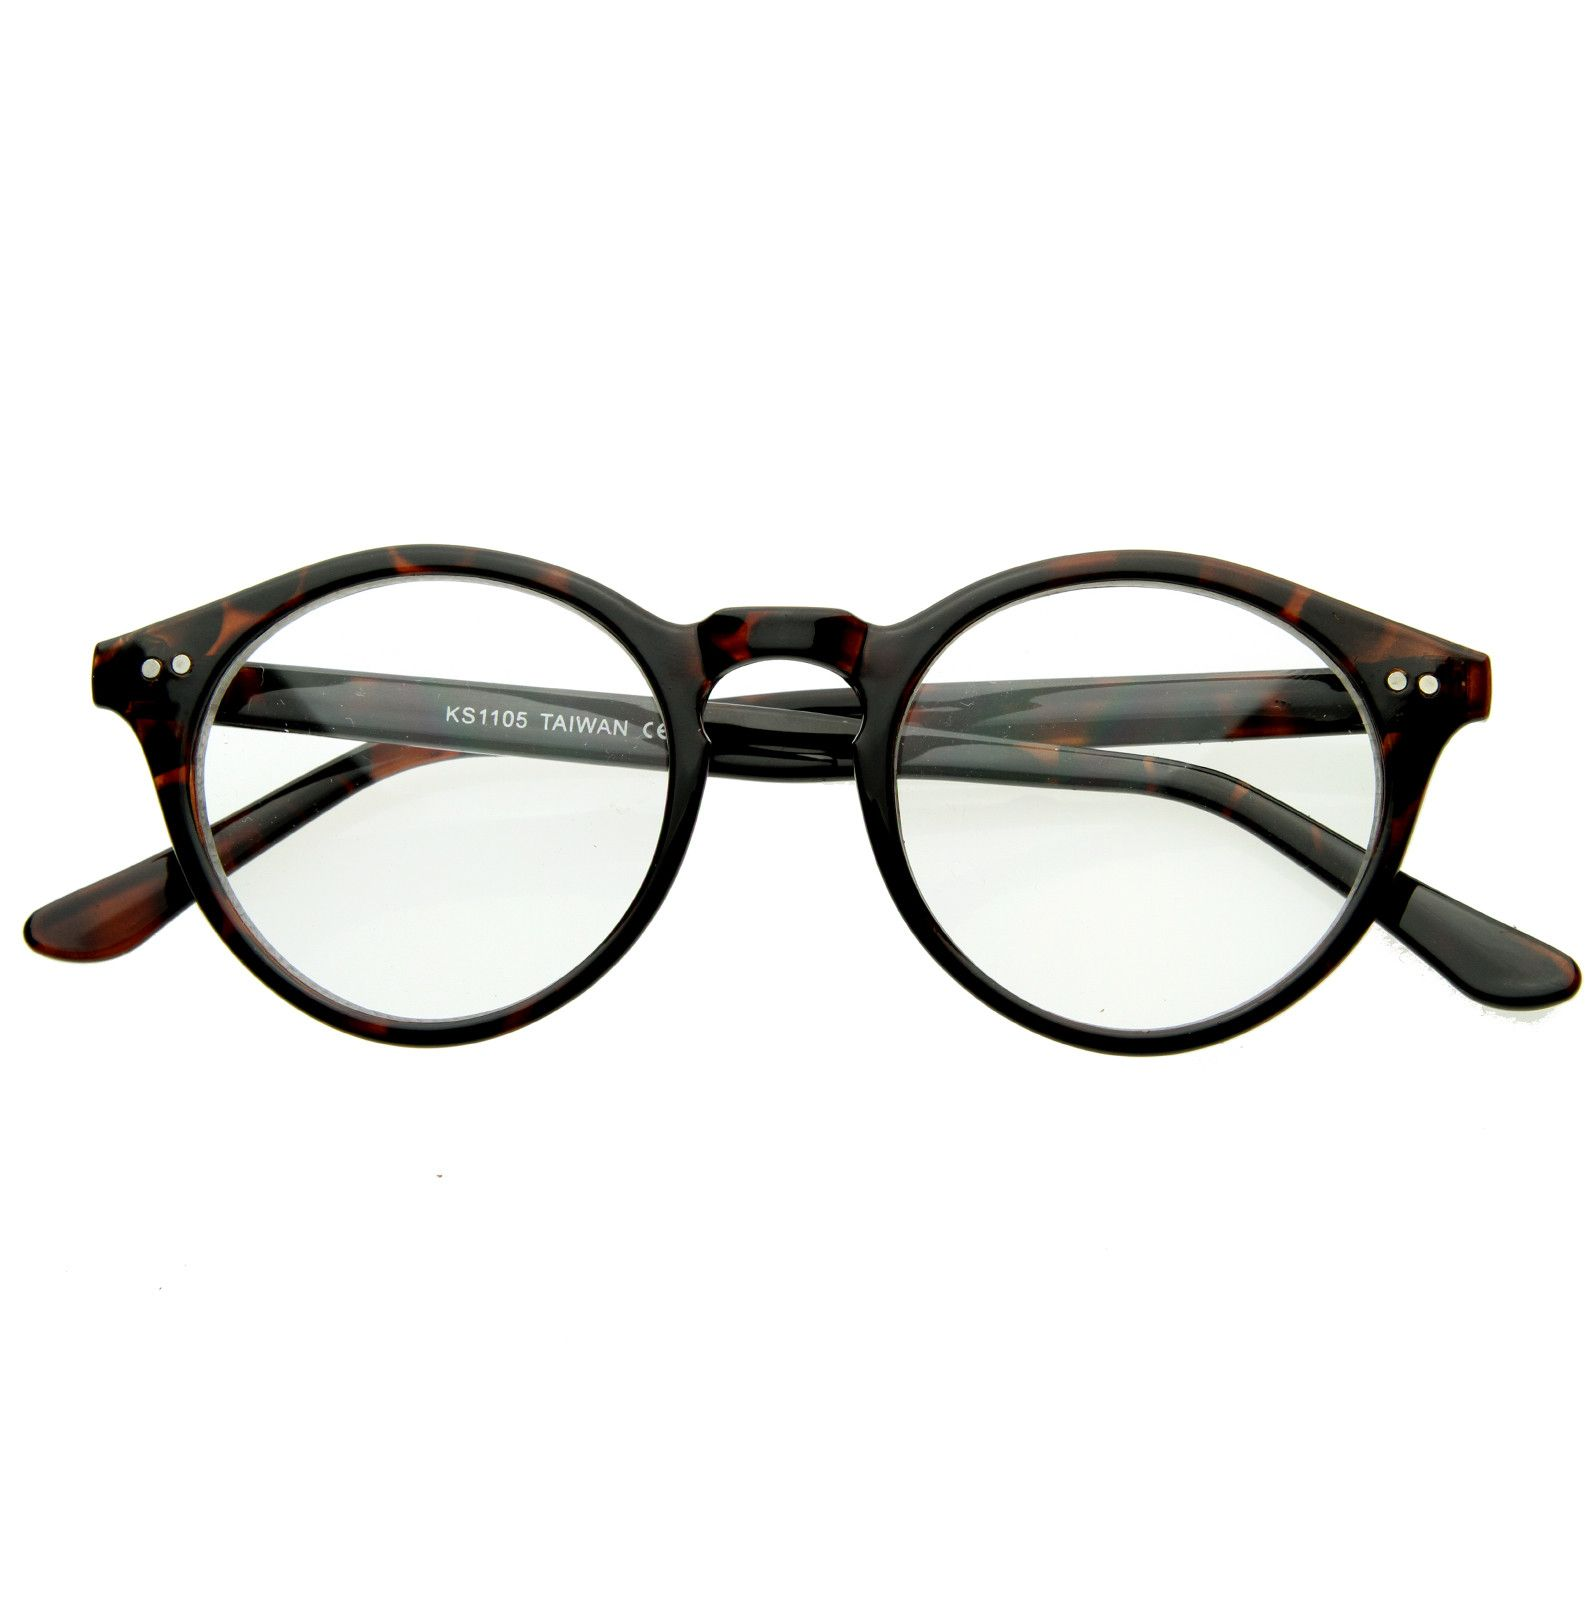 5314a3ff67 Vintage European Clear Lens Small Round Glasses 8403 from zeroUV